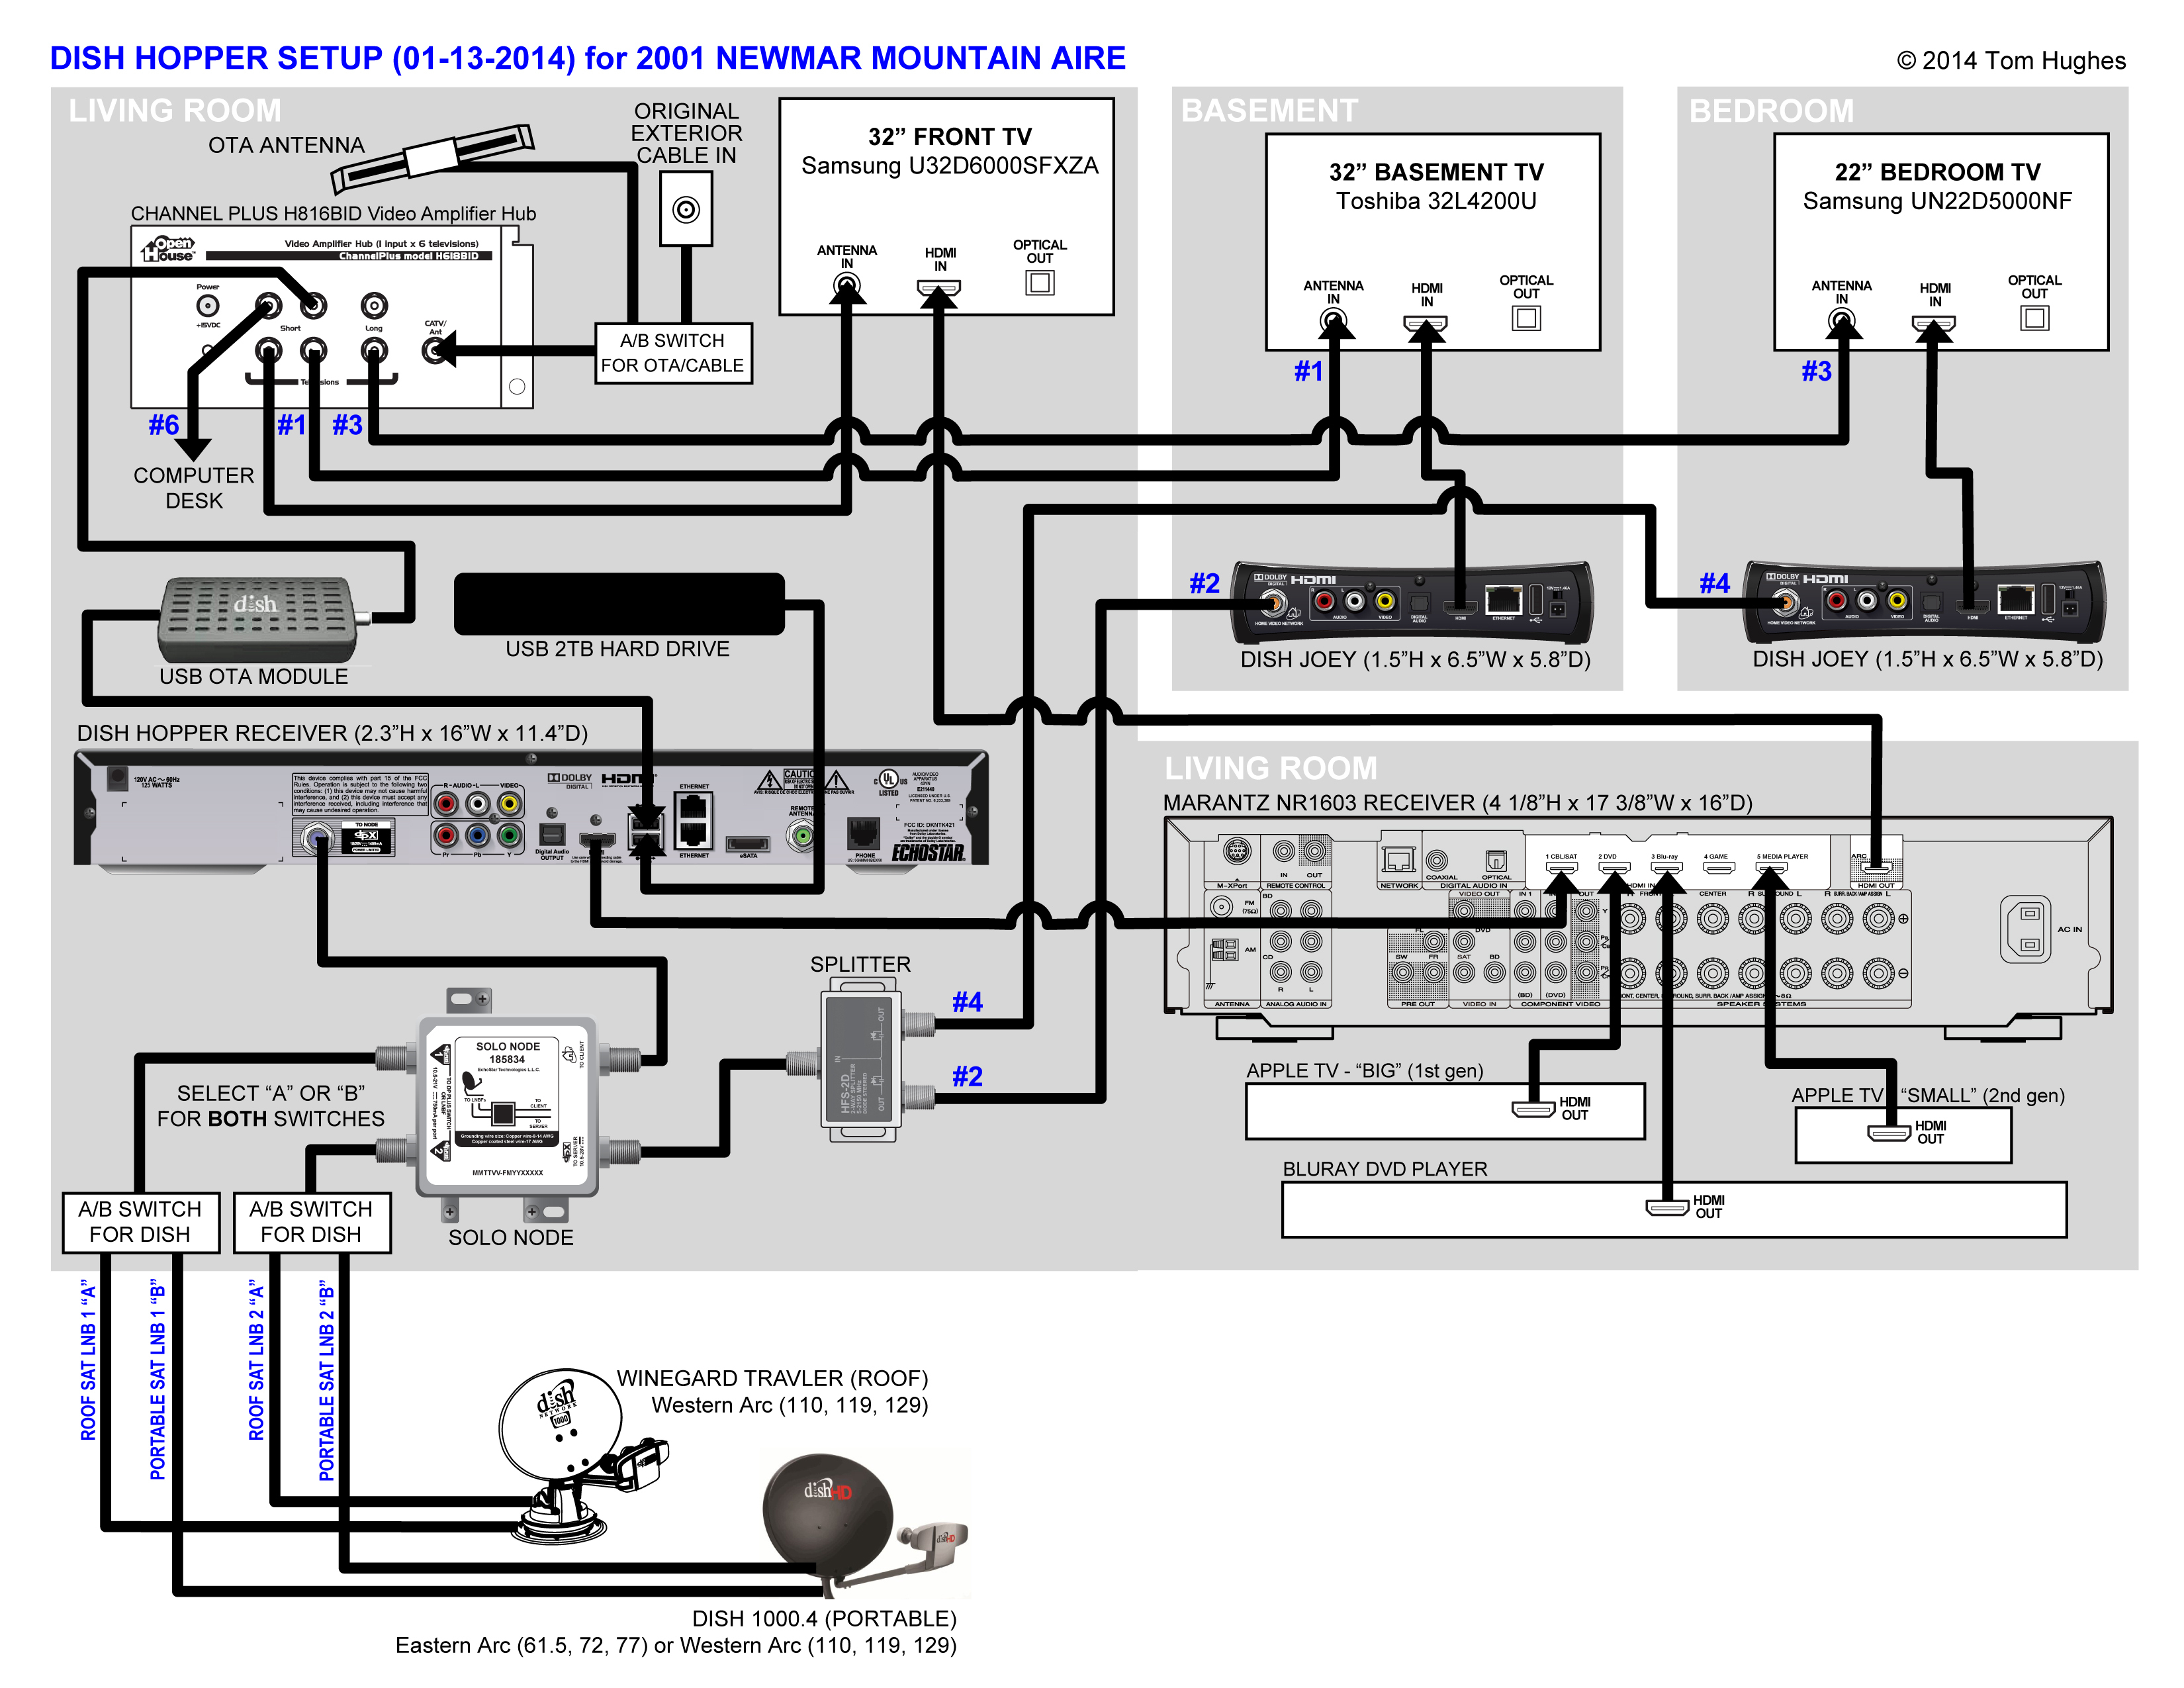 King Dome Wiring Diagram Kinect Sensor Madp New Setup Hopper System - Microsoft Usb Receiver Wiring Diagram